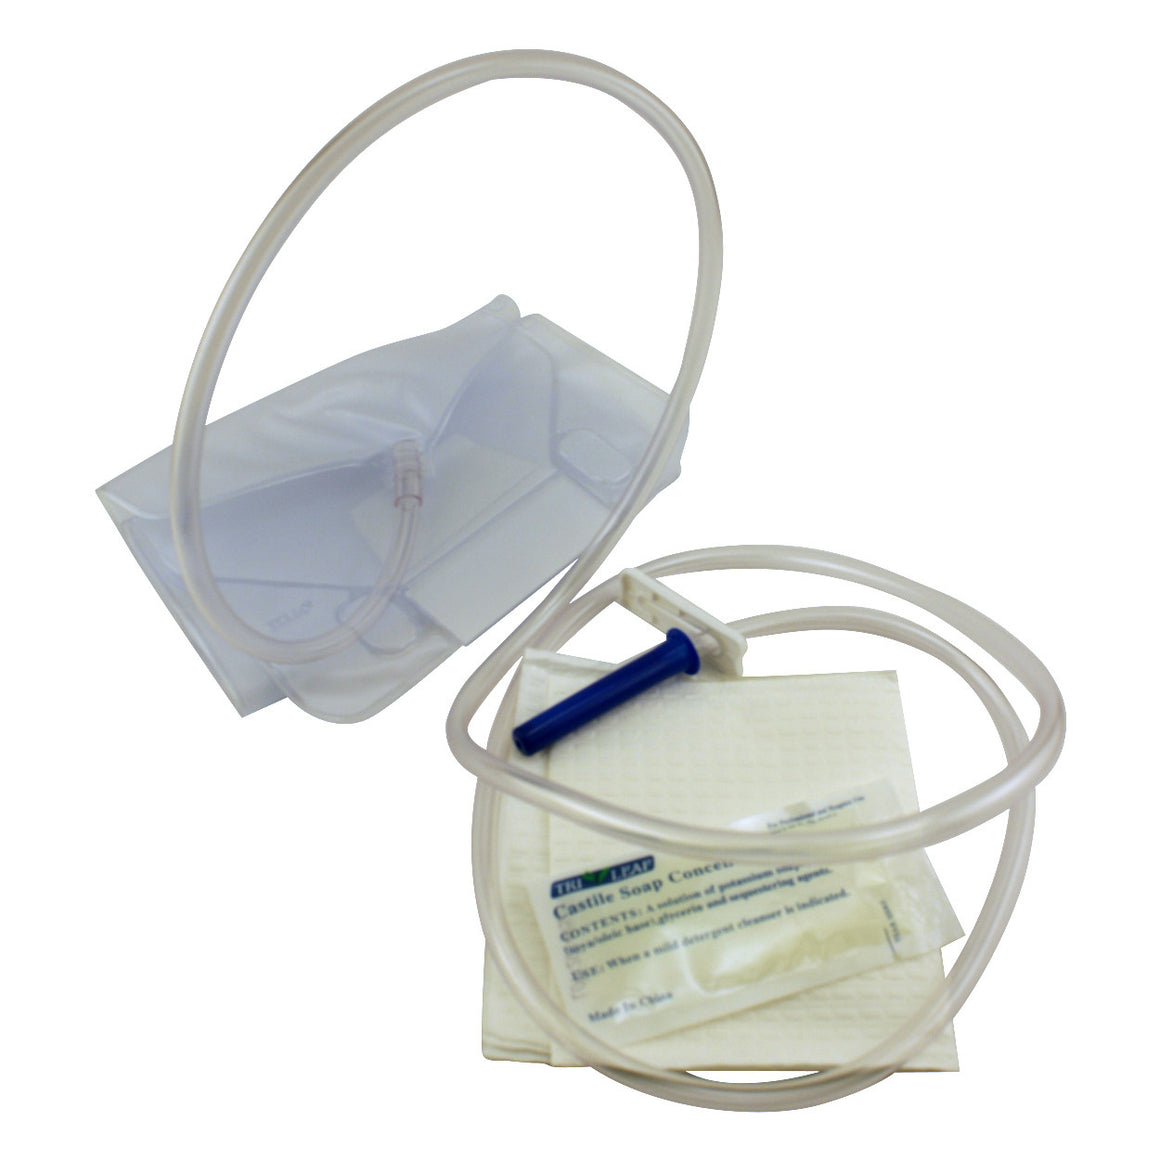 Enema Bag Set - 1.5 Quarts - Hospital Style